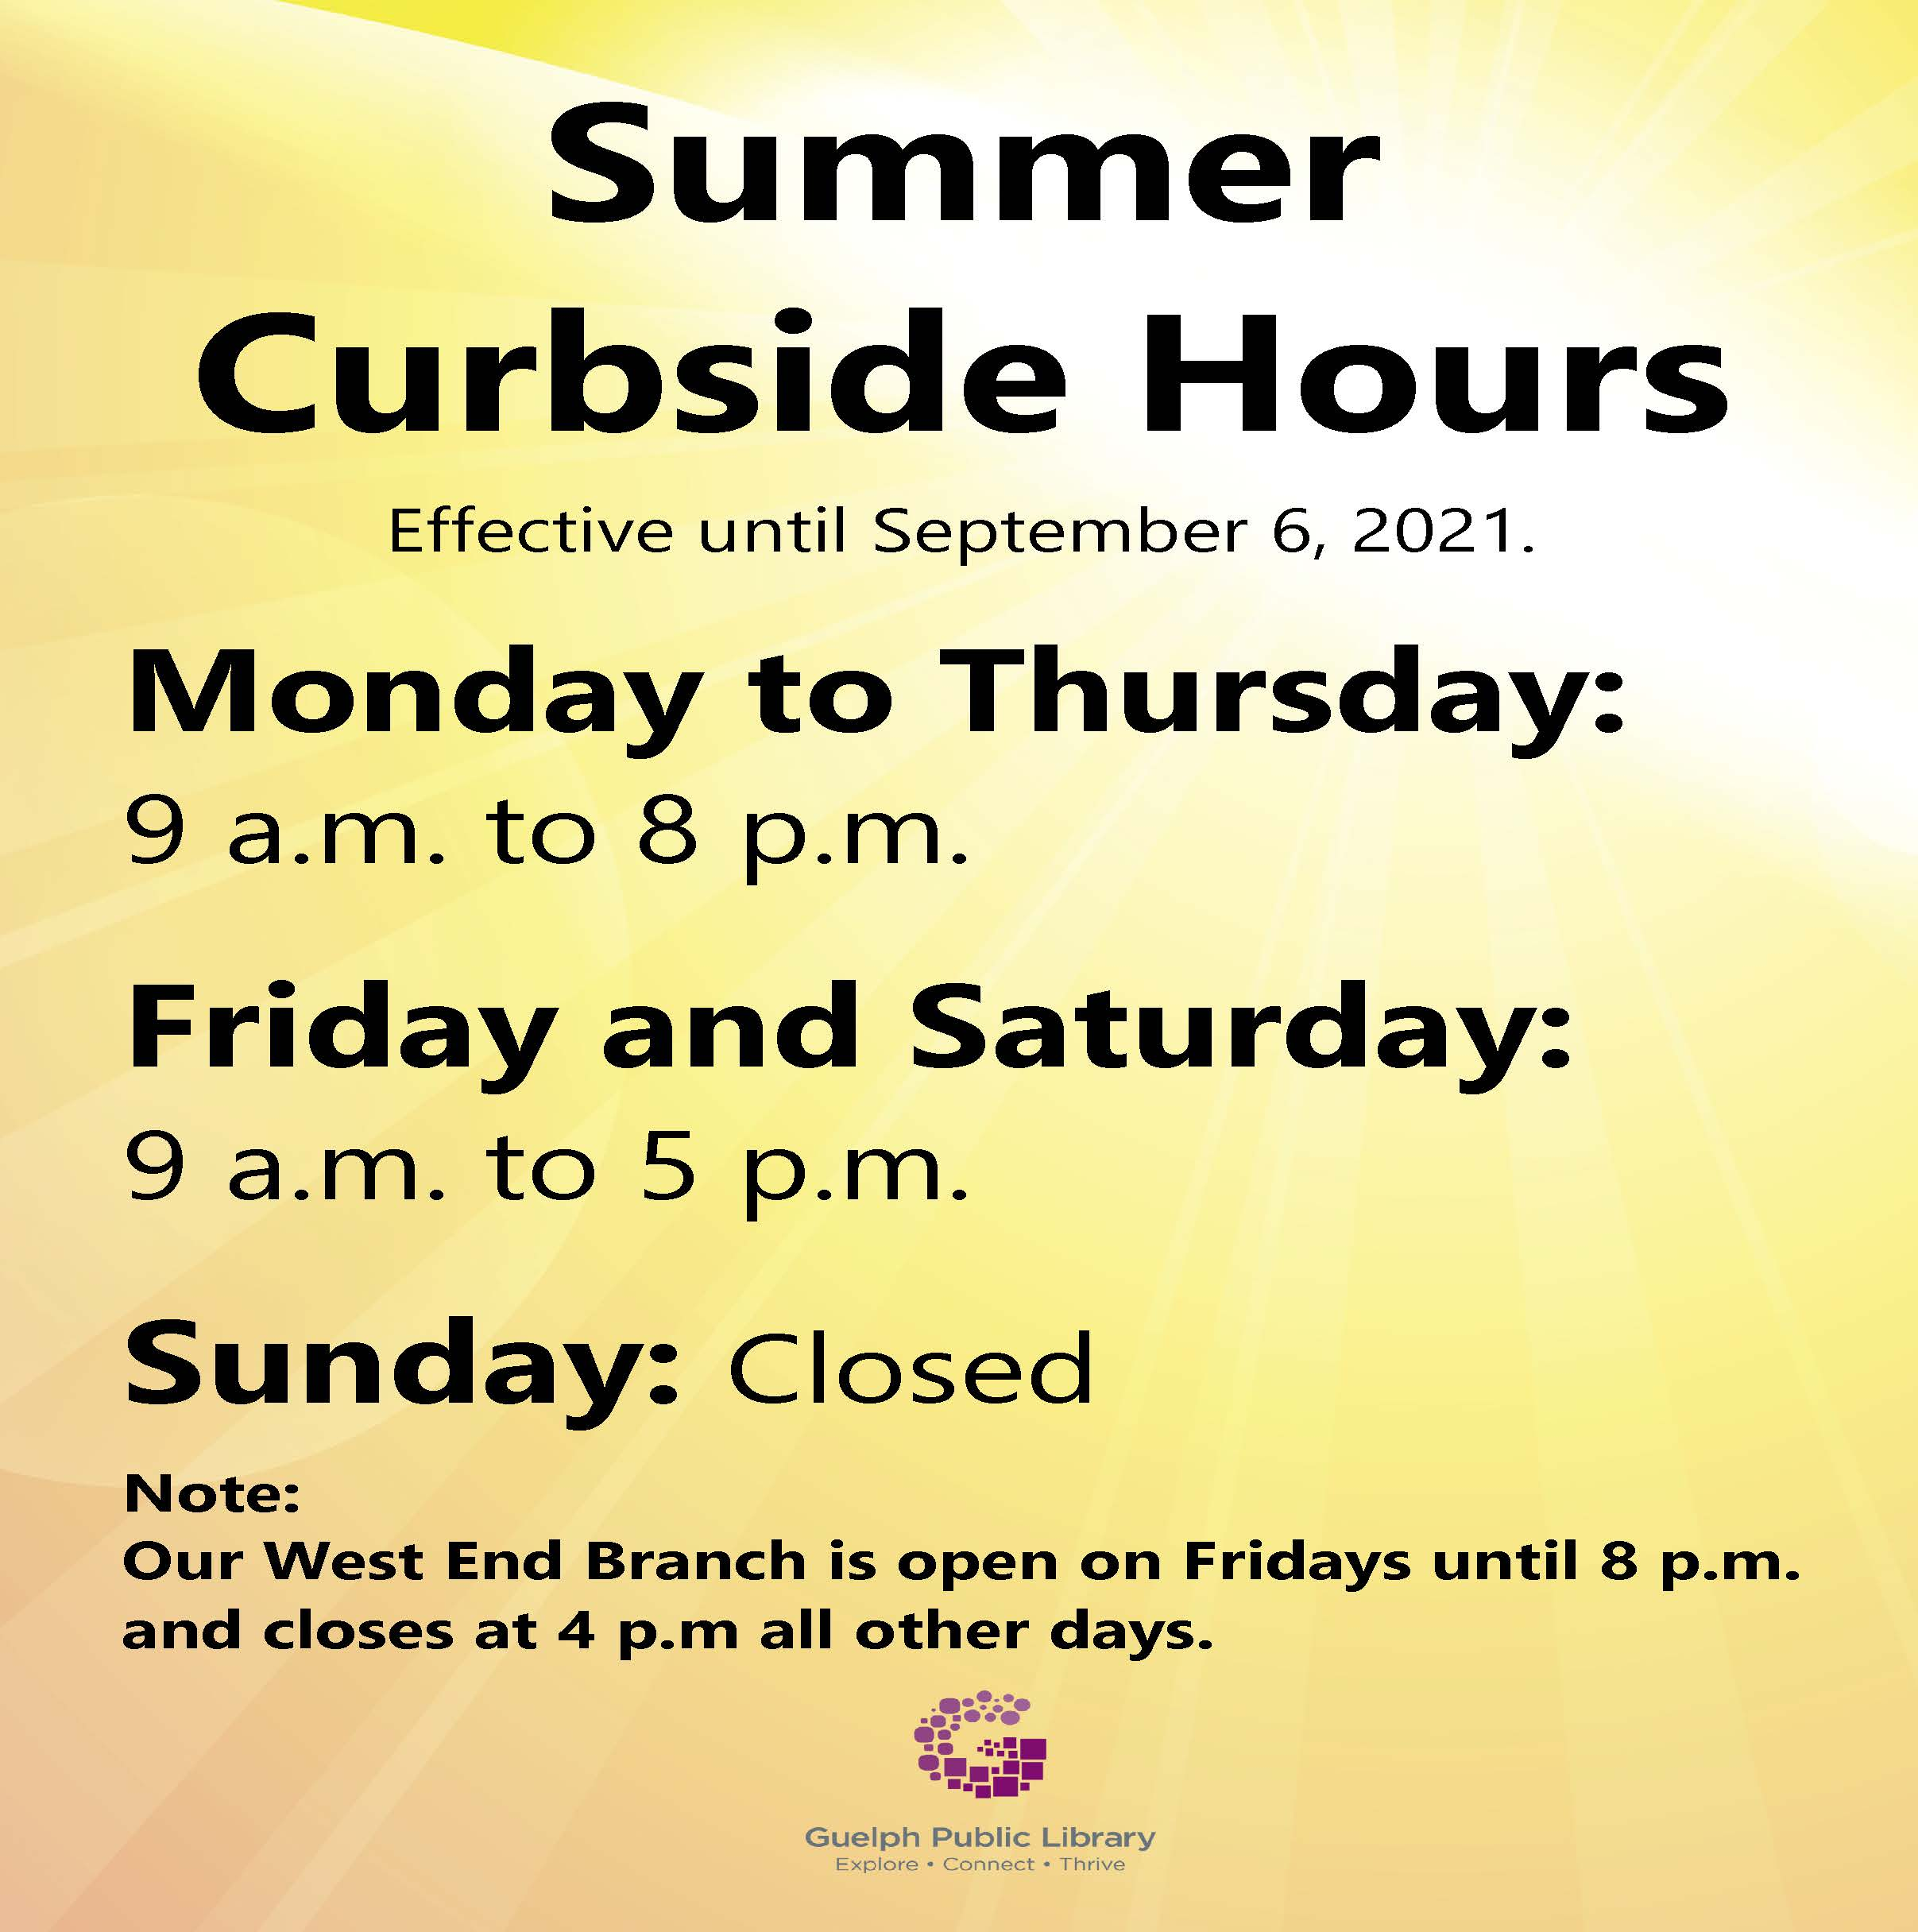 Summer Curbside Service Hours